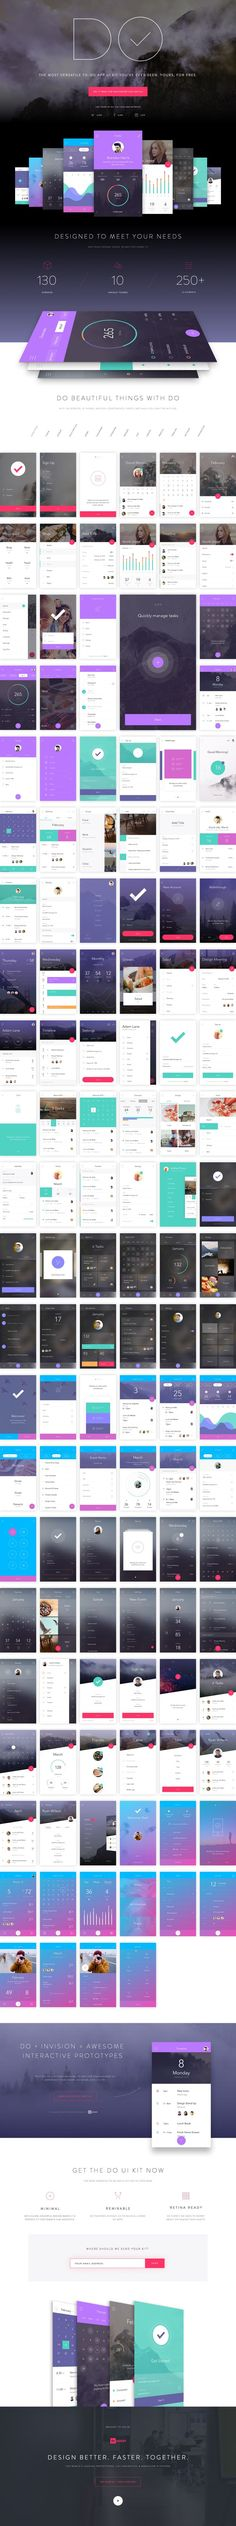 Loves Data Loves| Get DO UI Kit for Photoshop & Sketch by Anton Aheichanka | #UI #userinterface #app || For the latest in technology, online marketing and data analysis, check out www.lovesdata.com/blog/?utm_content=bufferbada5&utm_medium=social&utm_source=pinterest.com&utm_campaign=buffer ||